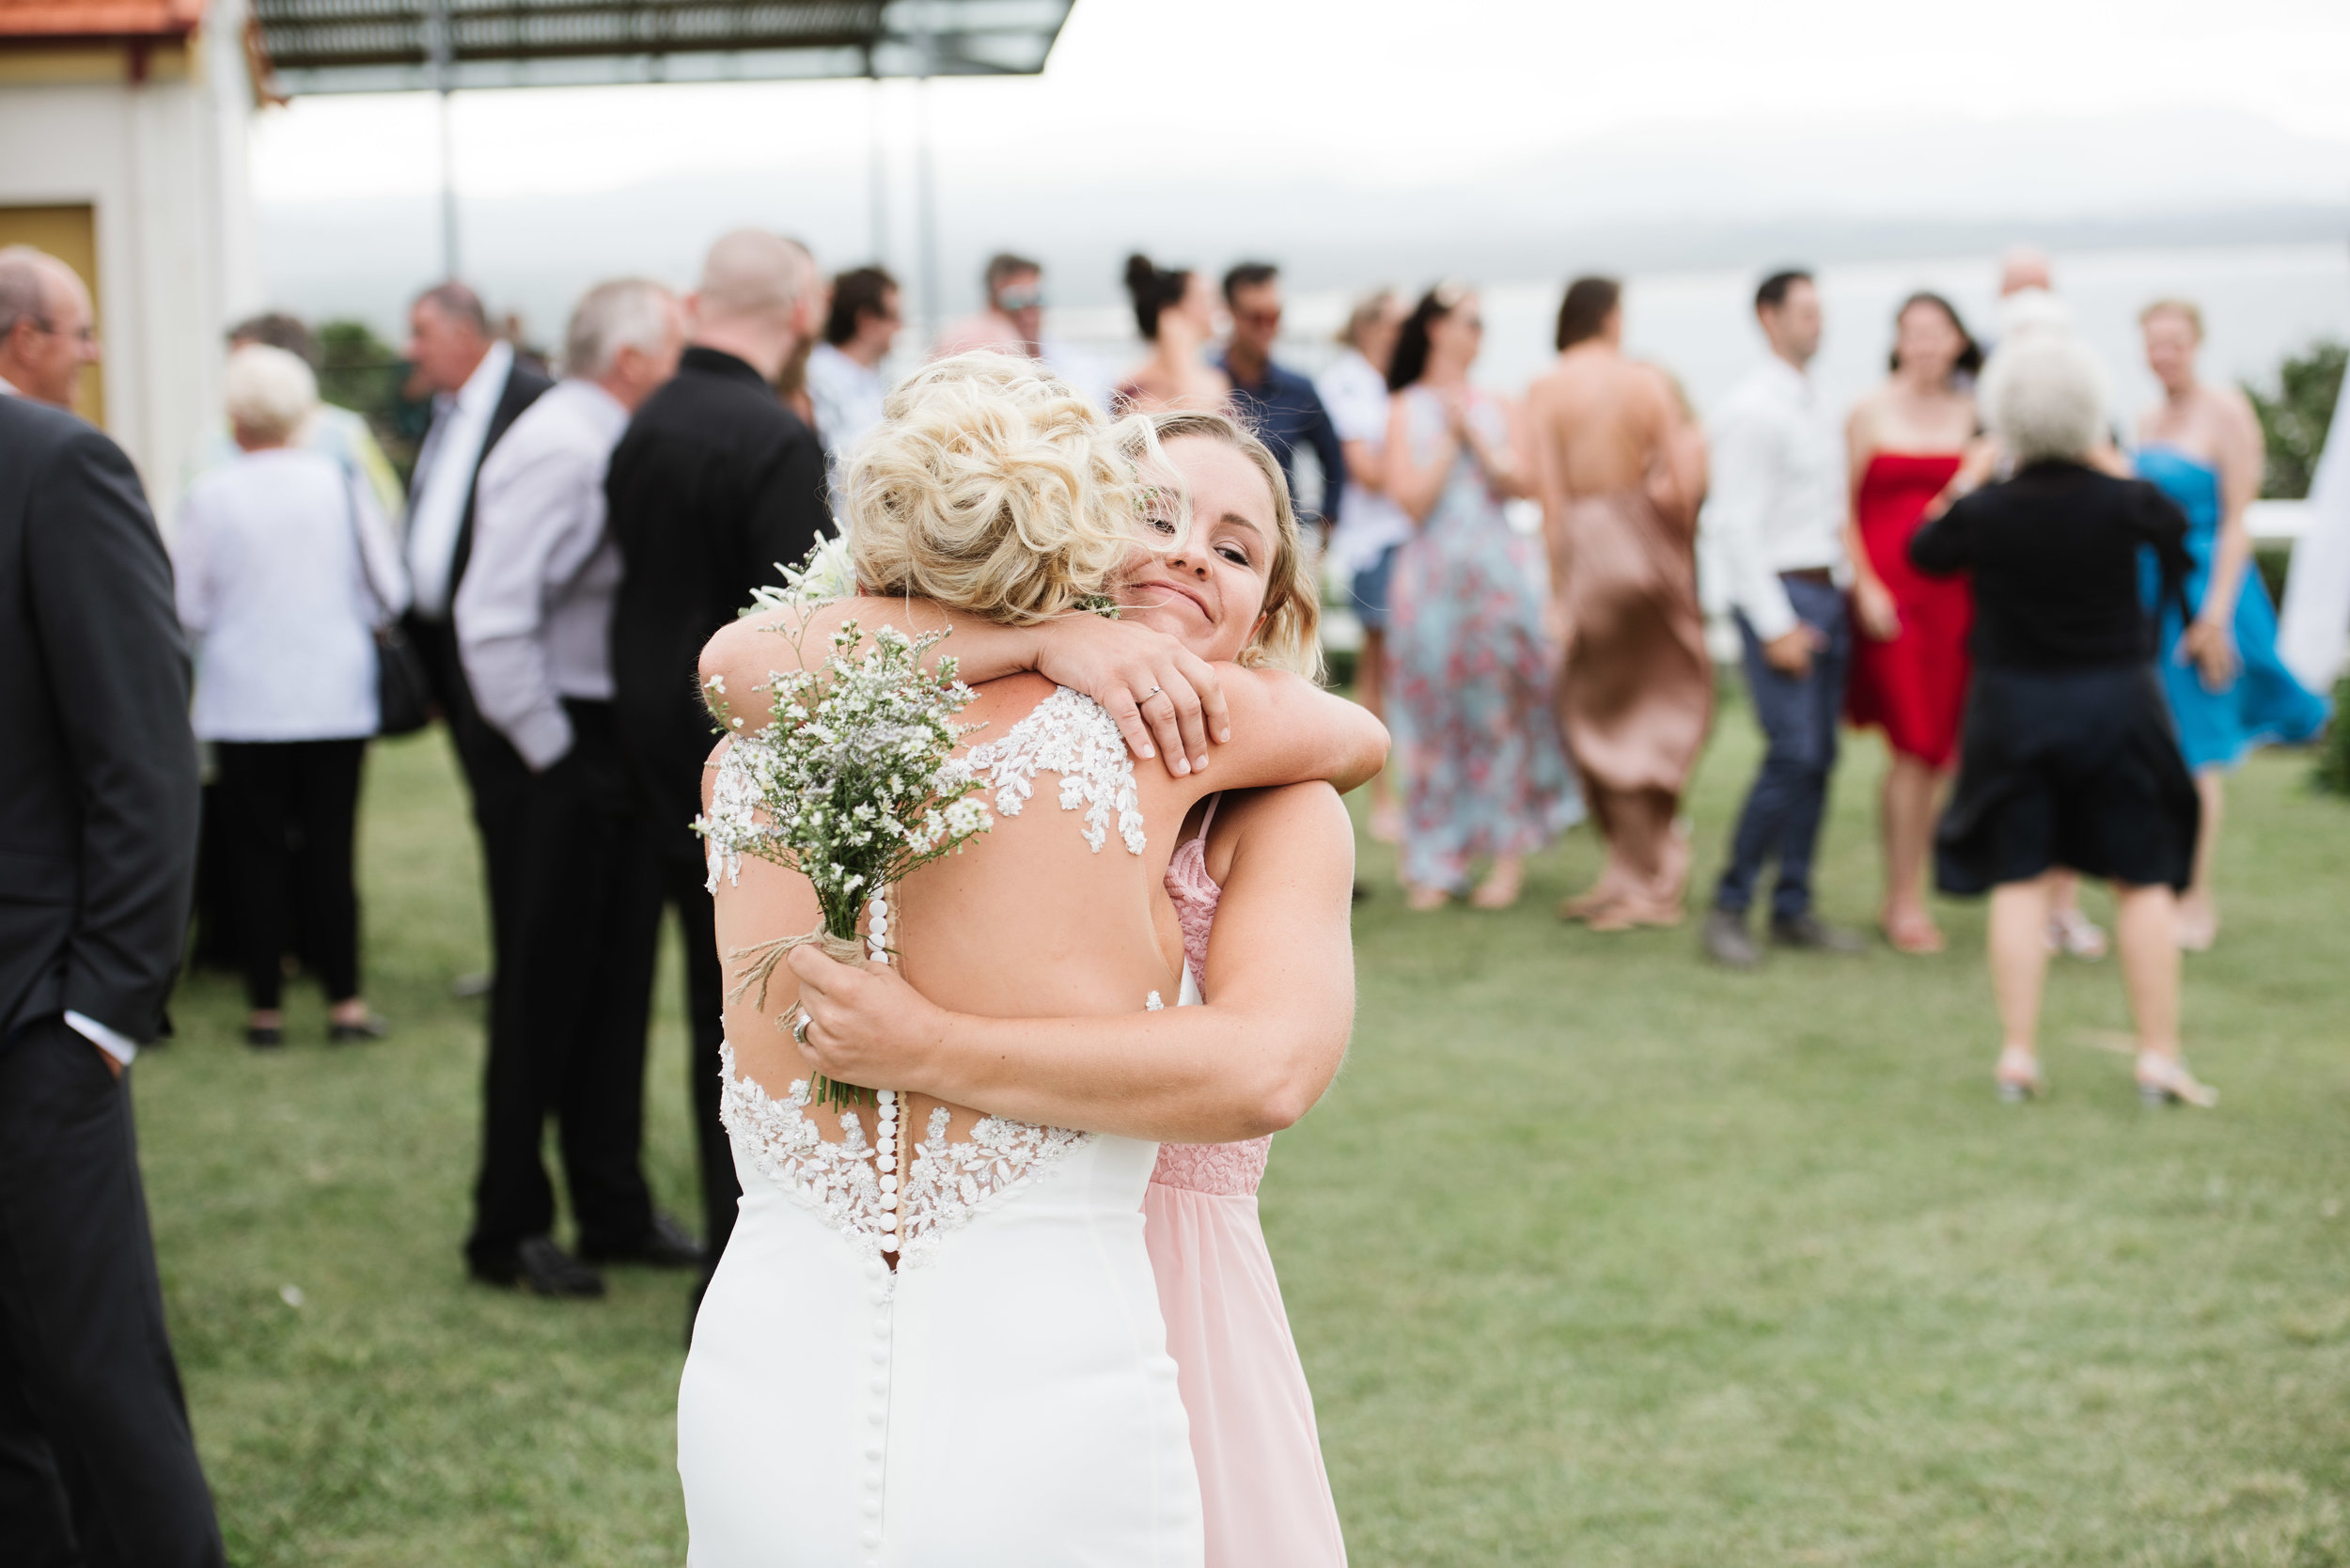 Katie and Matt- wedding photographer, byron bay wedding and family photographer, tweed heads wedding and family photography-344.jpg